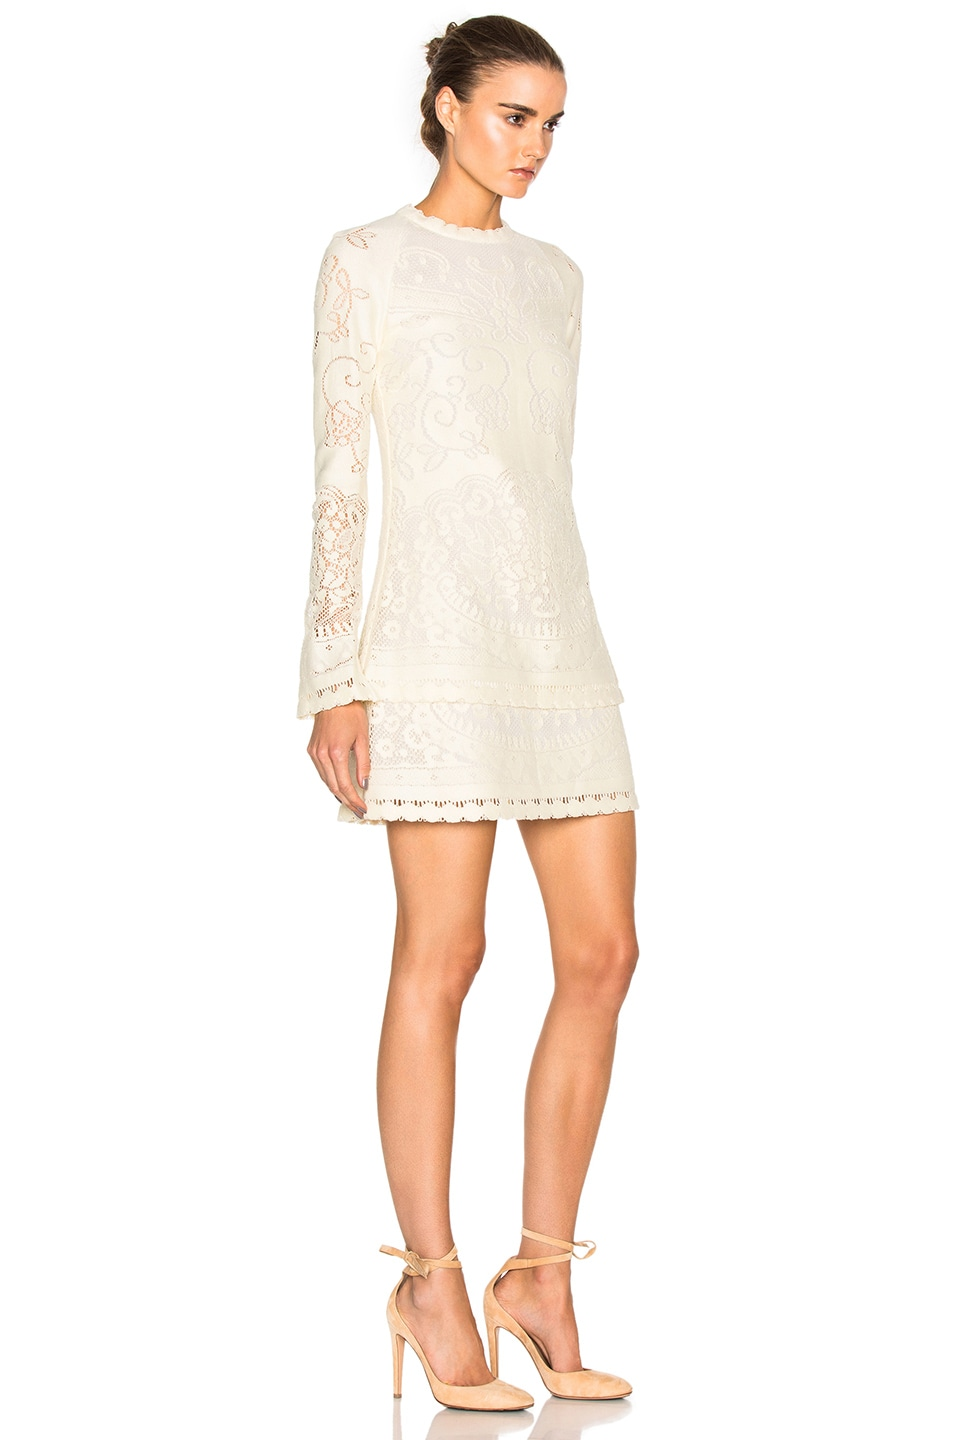 Outlet Cheap Quality Chloé Long Sleeve Mini Dress Buy Cheap 2018 Unisex Cheap Sale Outlet Store Latest Collections Sale Online JpuUbs